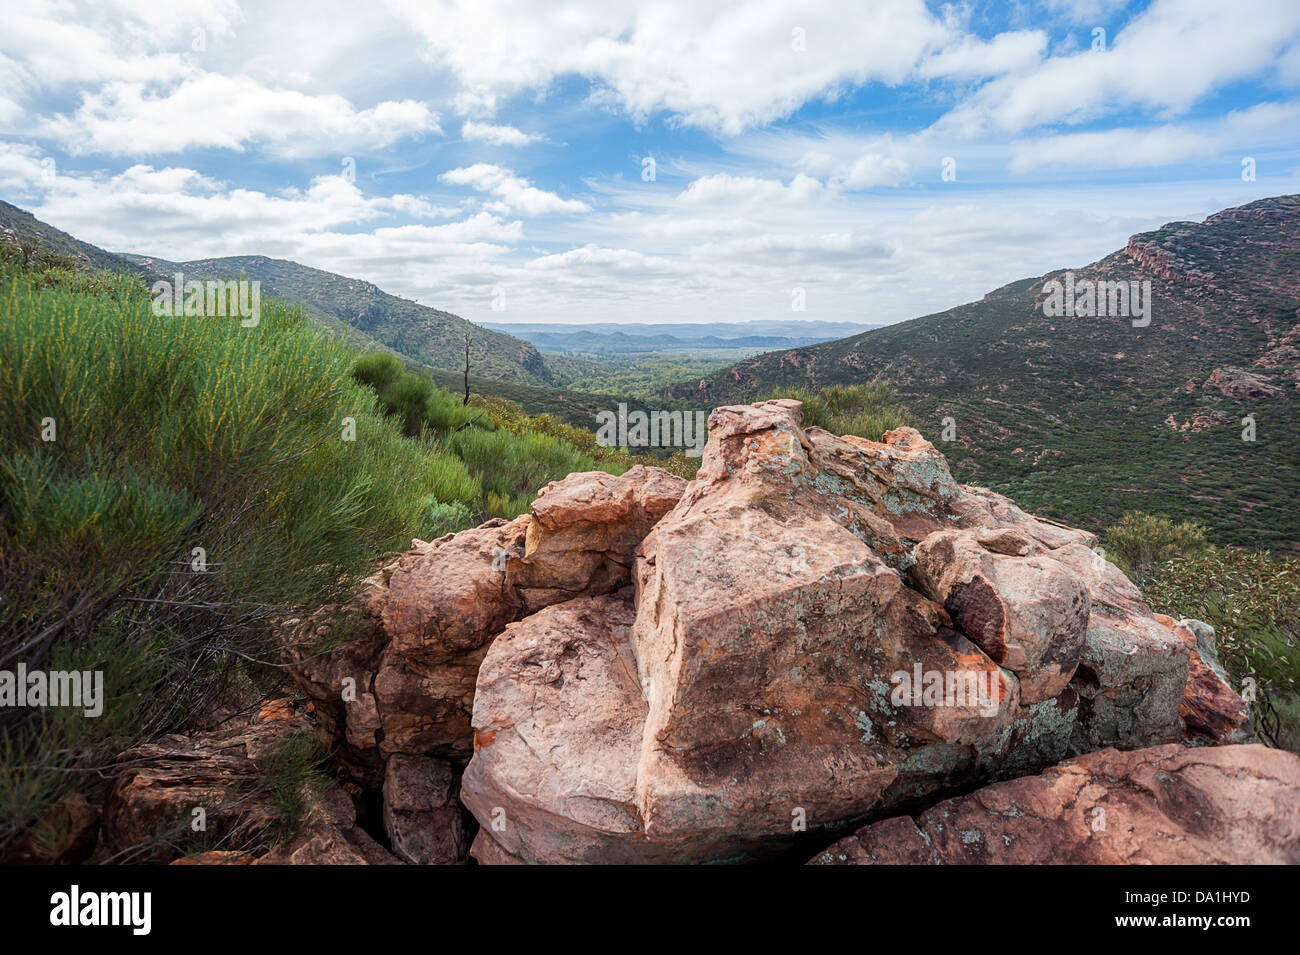 The ruggedly beautiful Flinders Ranges in the Australian outback. - Stock Image